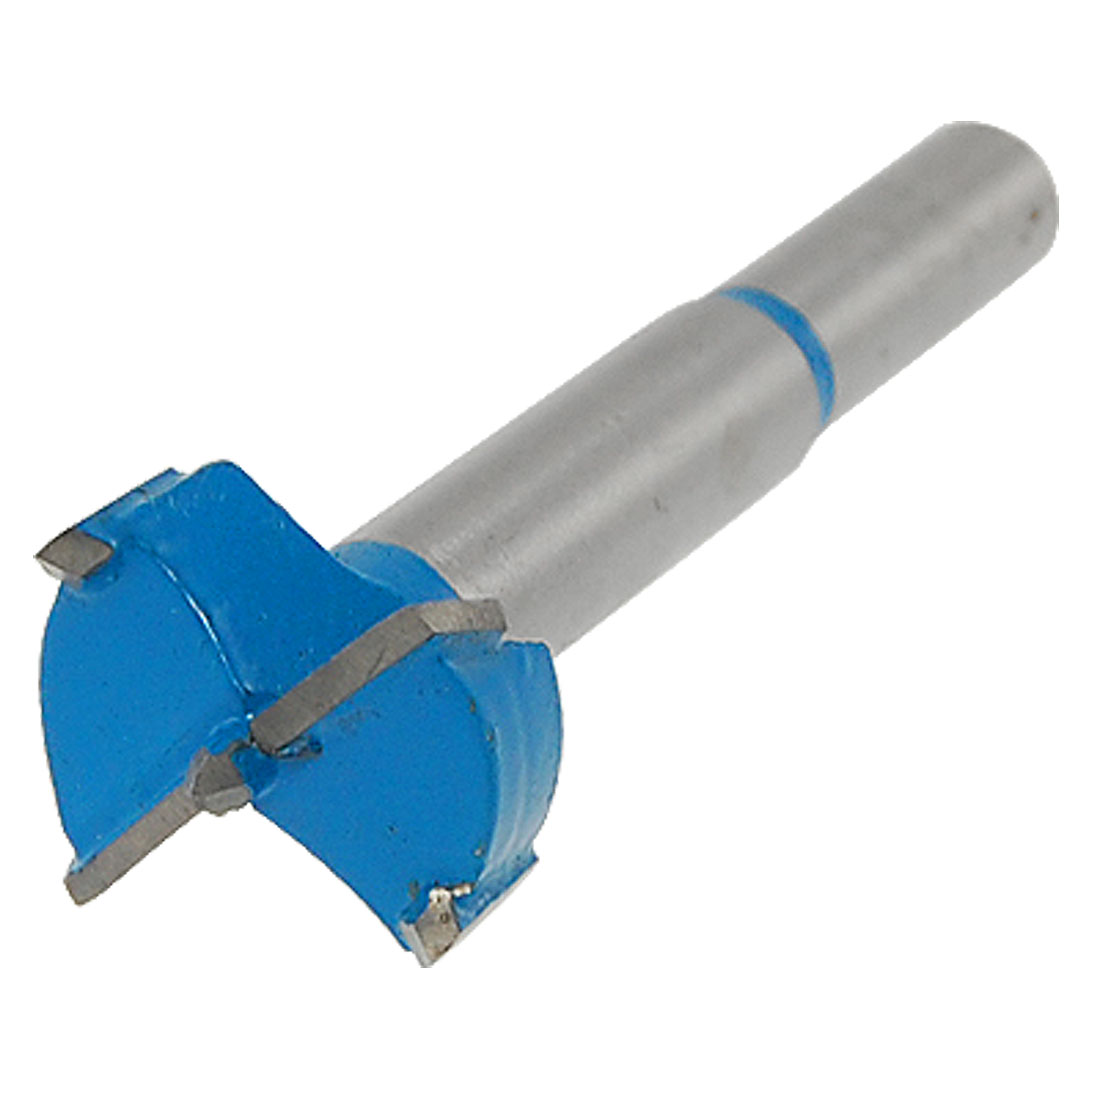 24mm Cutting Diameter Blue Hinge Boring Drill Bit for Carpentry